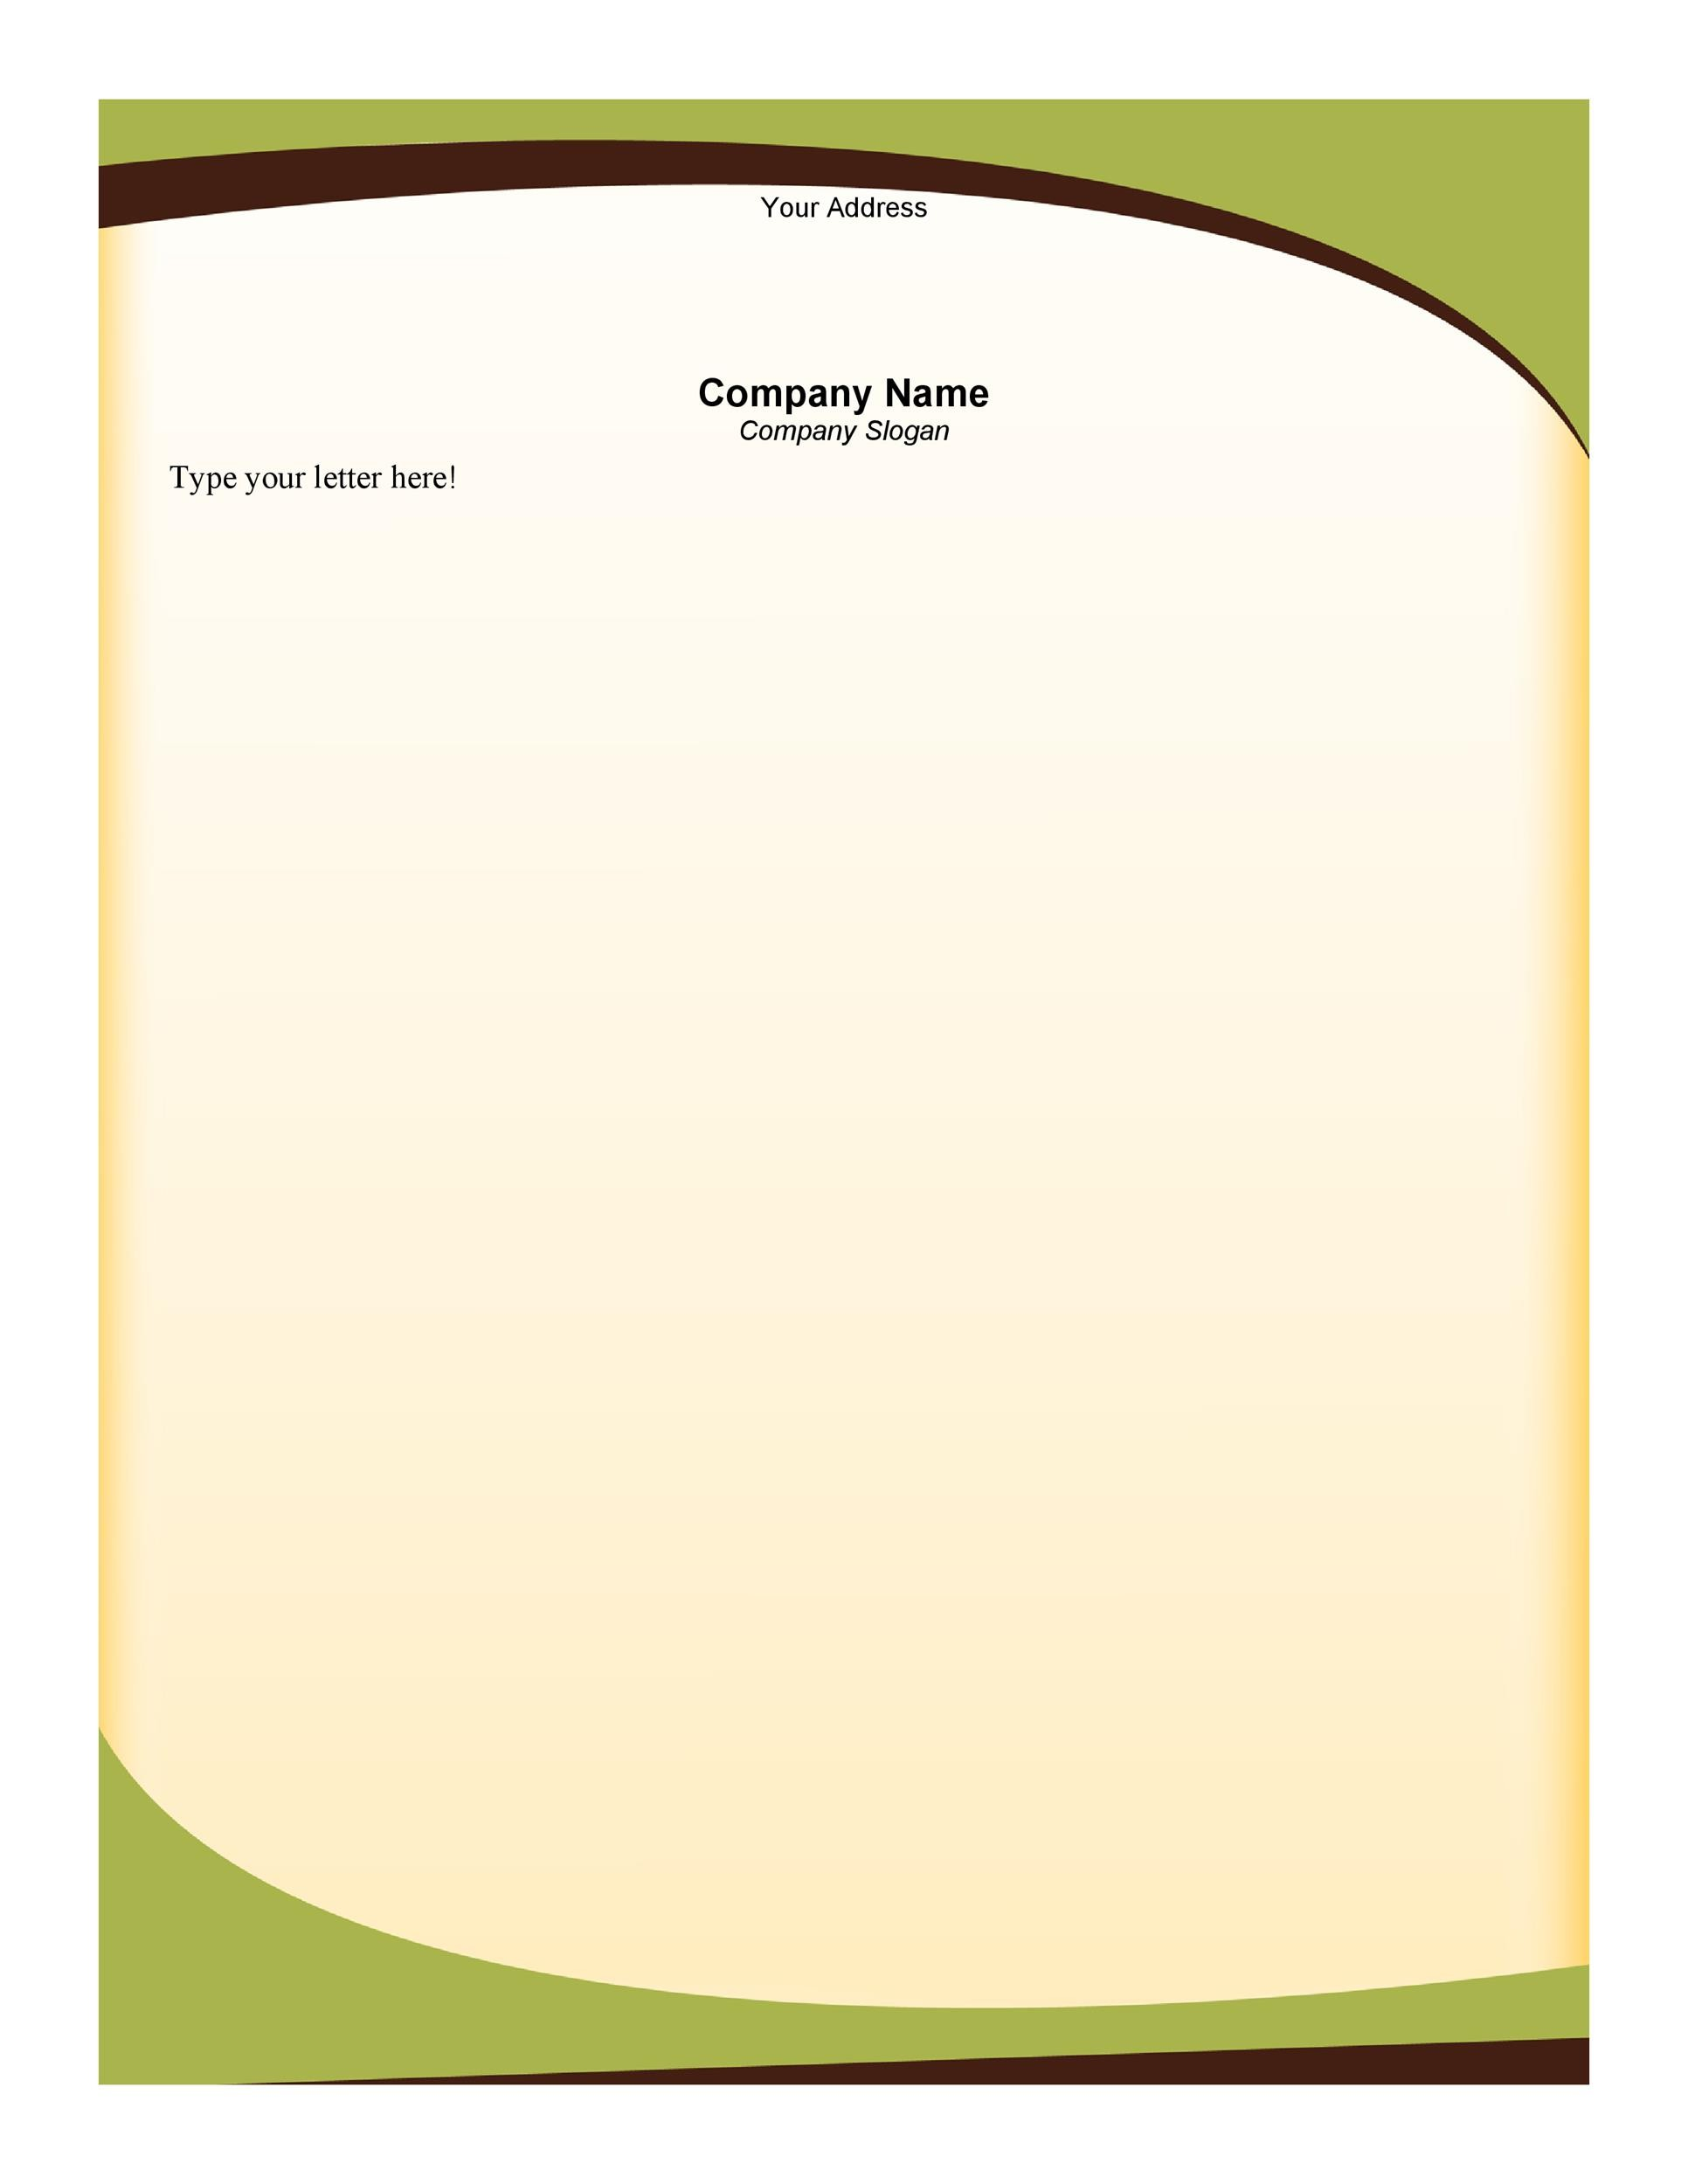 Printable Letterhead Template 04  Free Business Letterhead Templates For Word